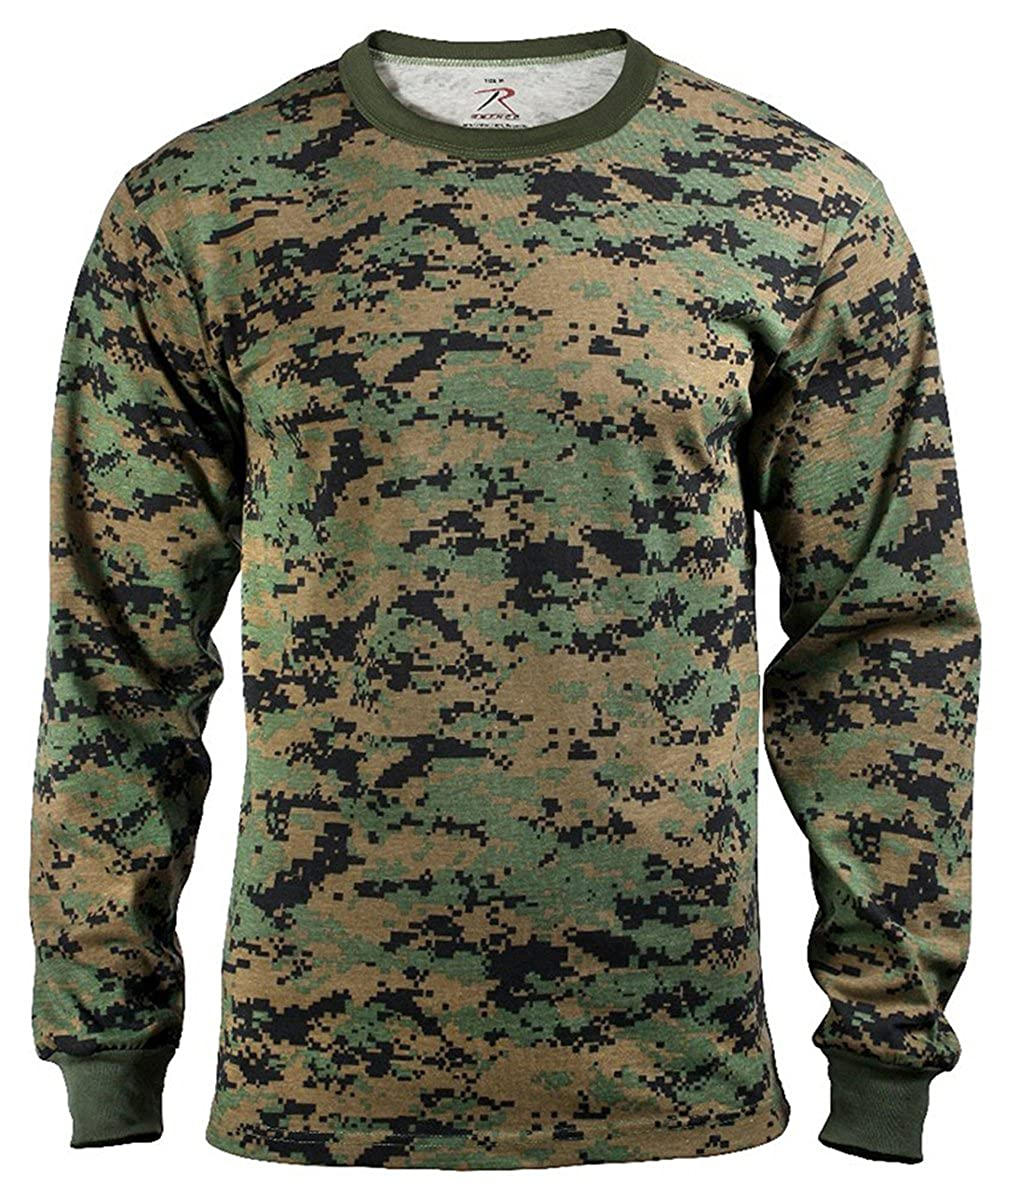 Rothco Long Sleeve T-Shirt, Woodland Digital, 2X 5495